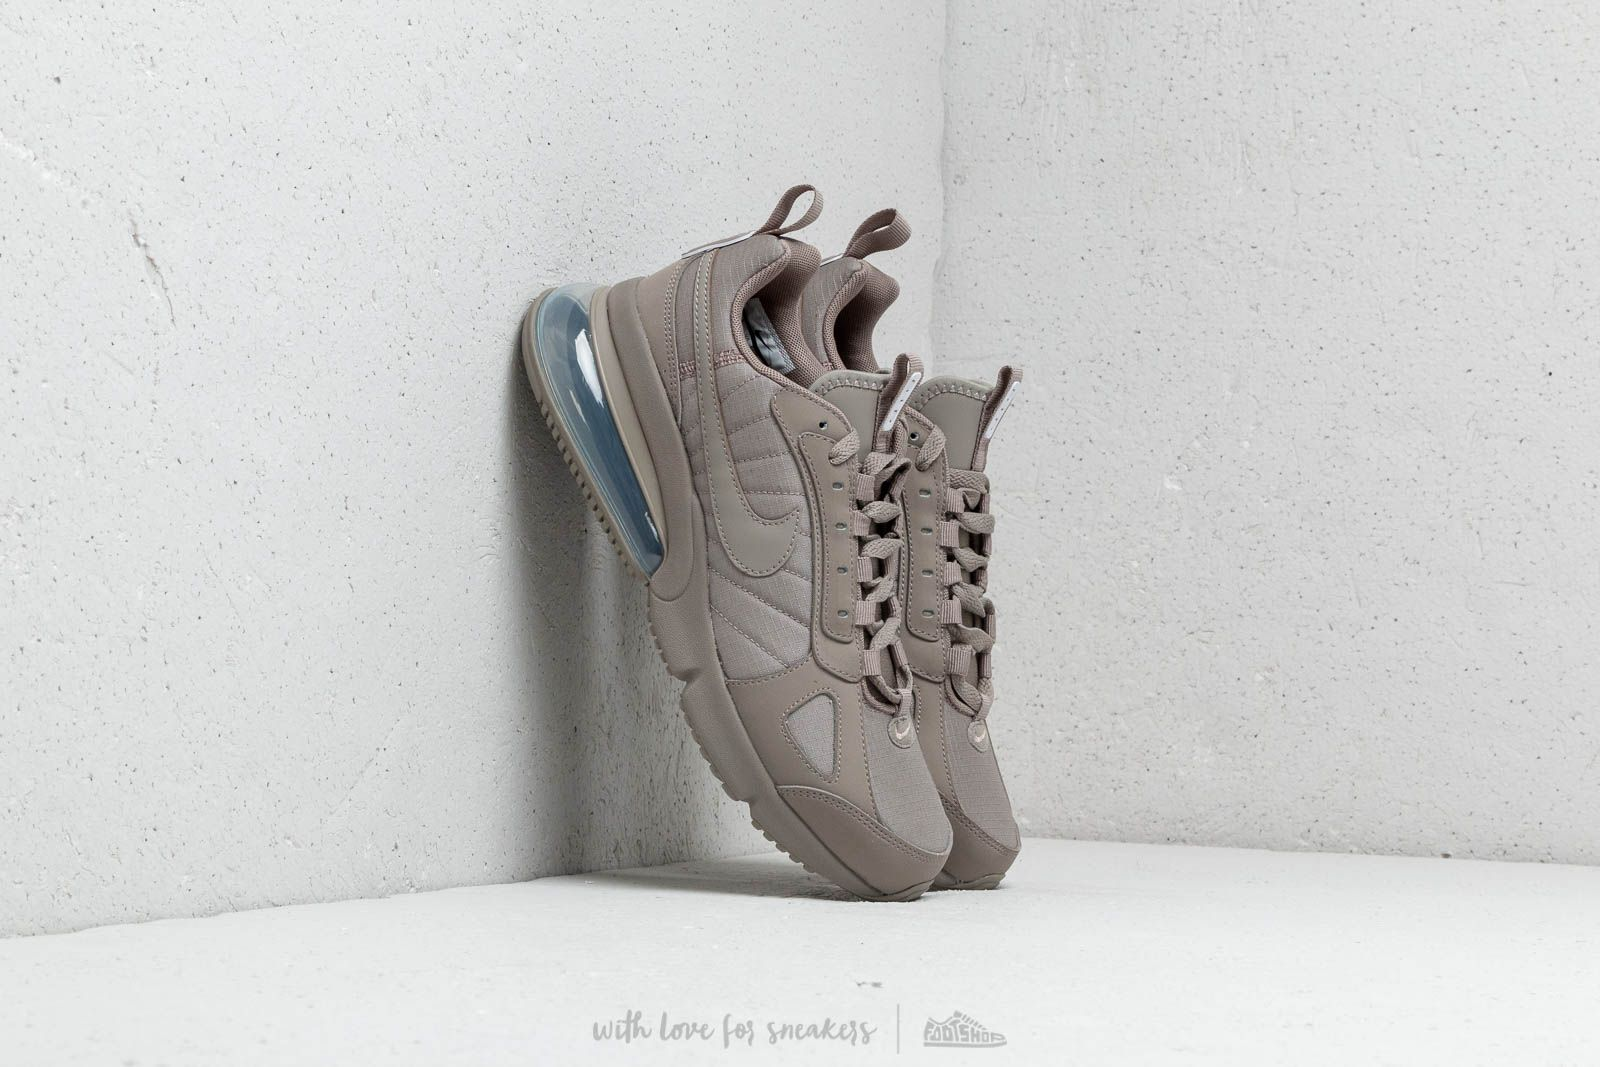 wholesale dealer 0004d 90014 Nike Air Max 270 Futura Light Taupe  Light Taupe at a great price 139 €